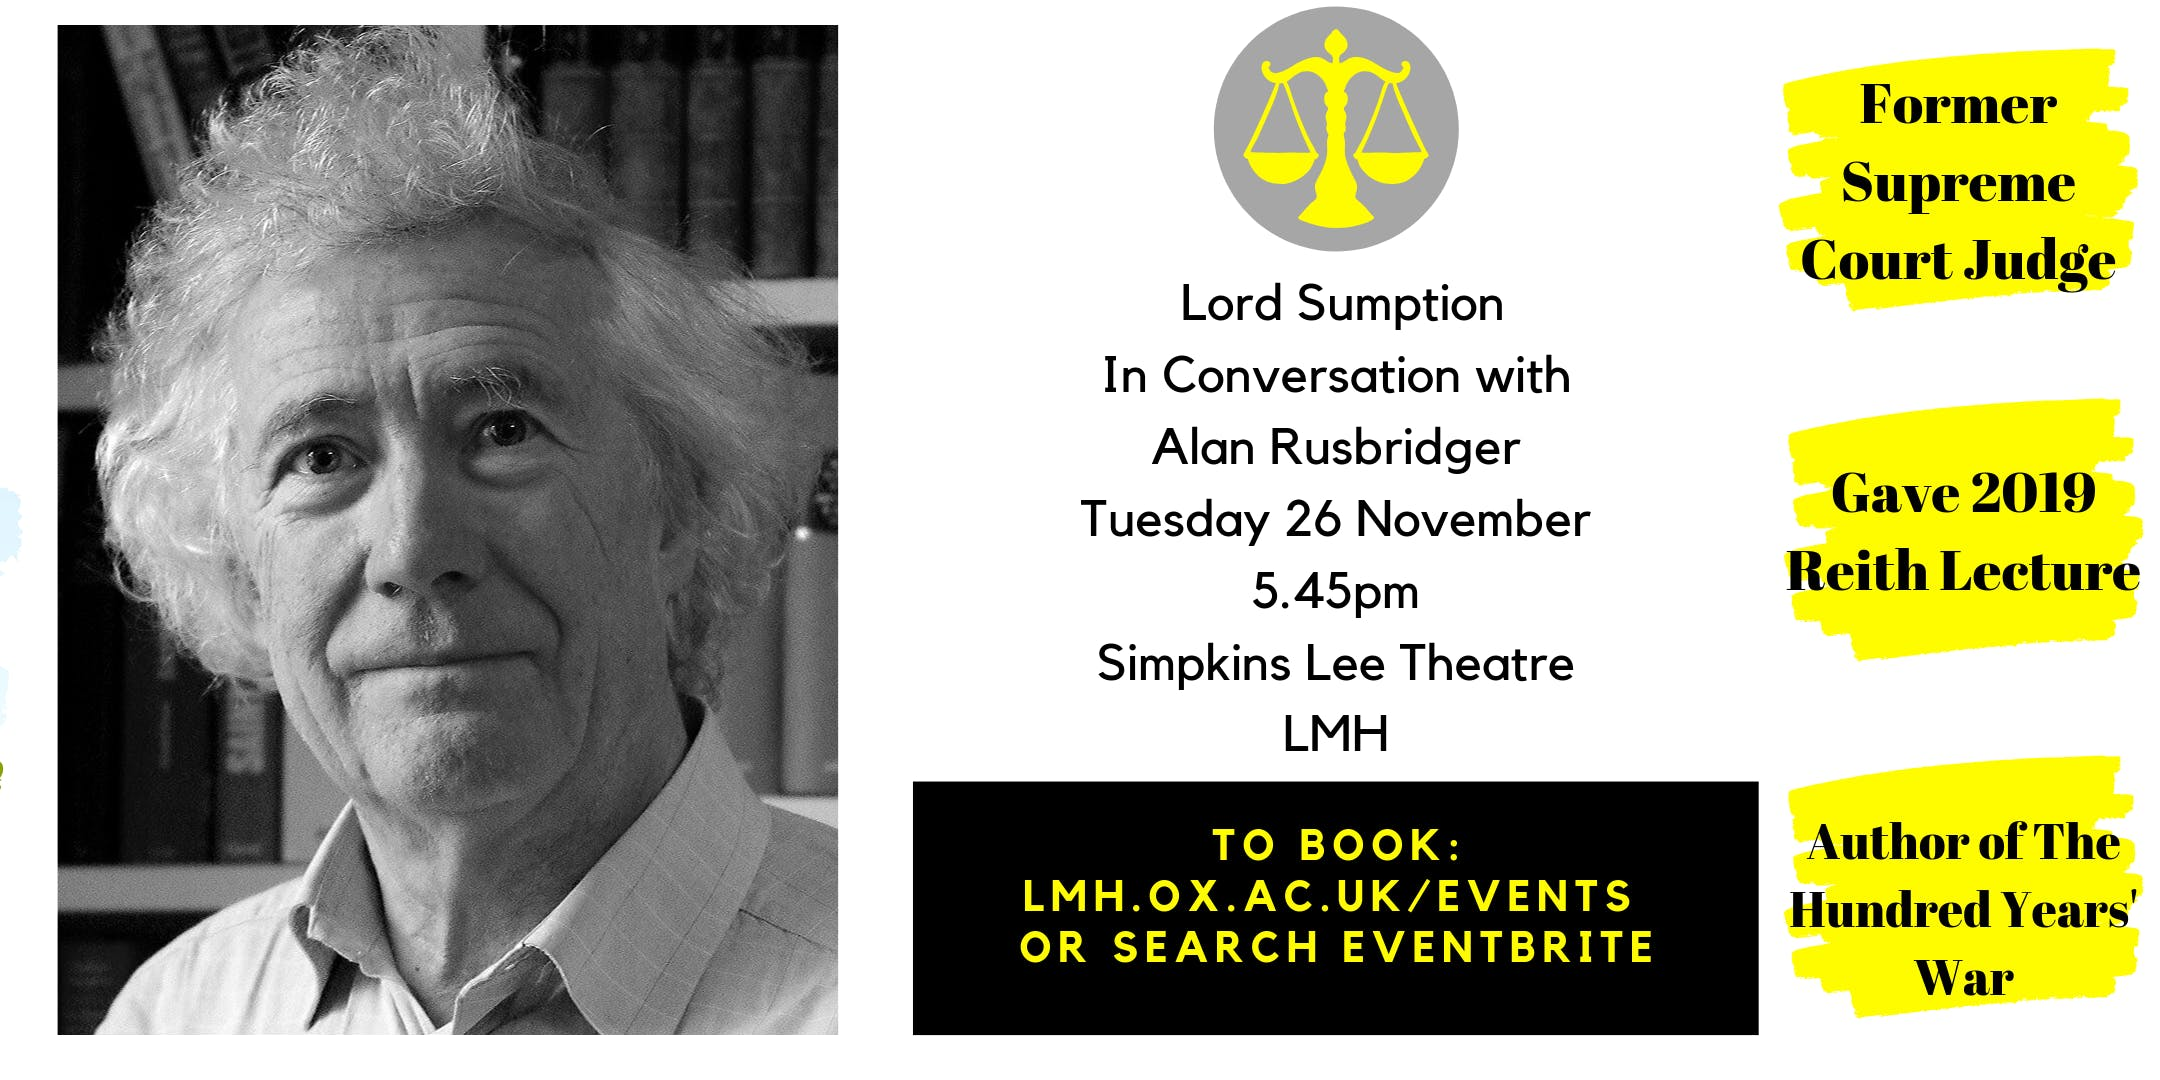 Lord Sumption In Conversation with Alan Rusbridger